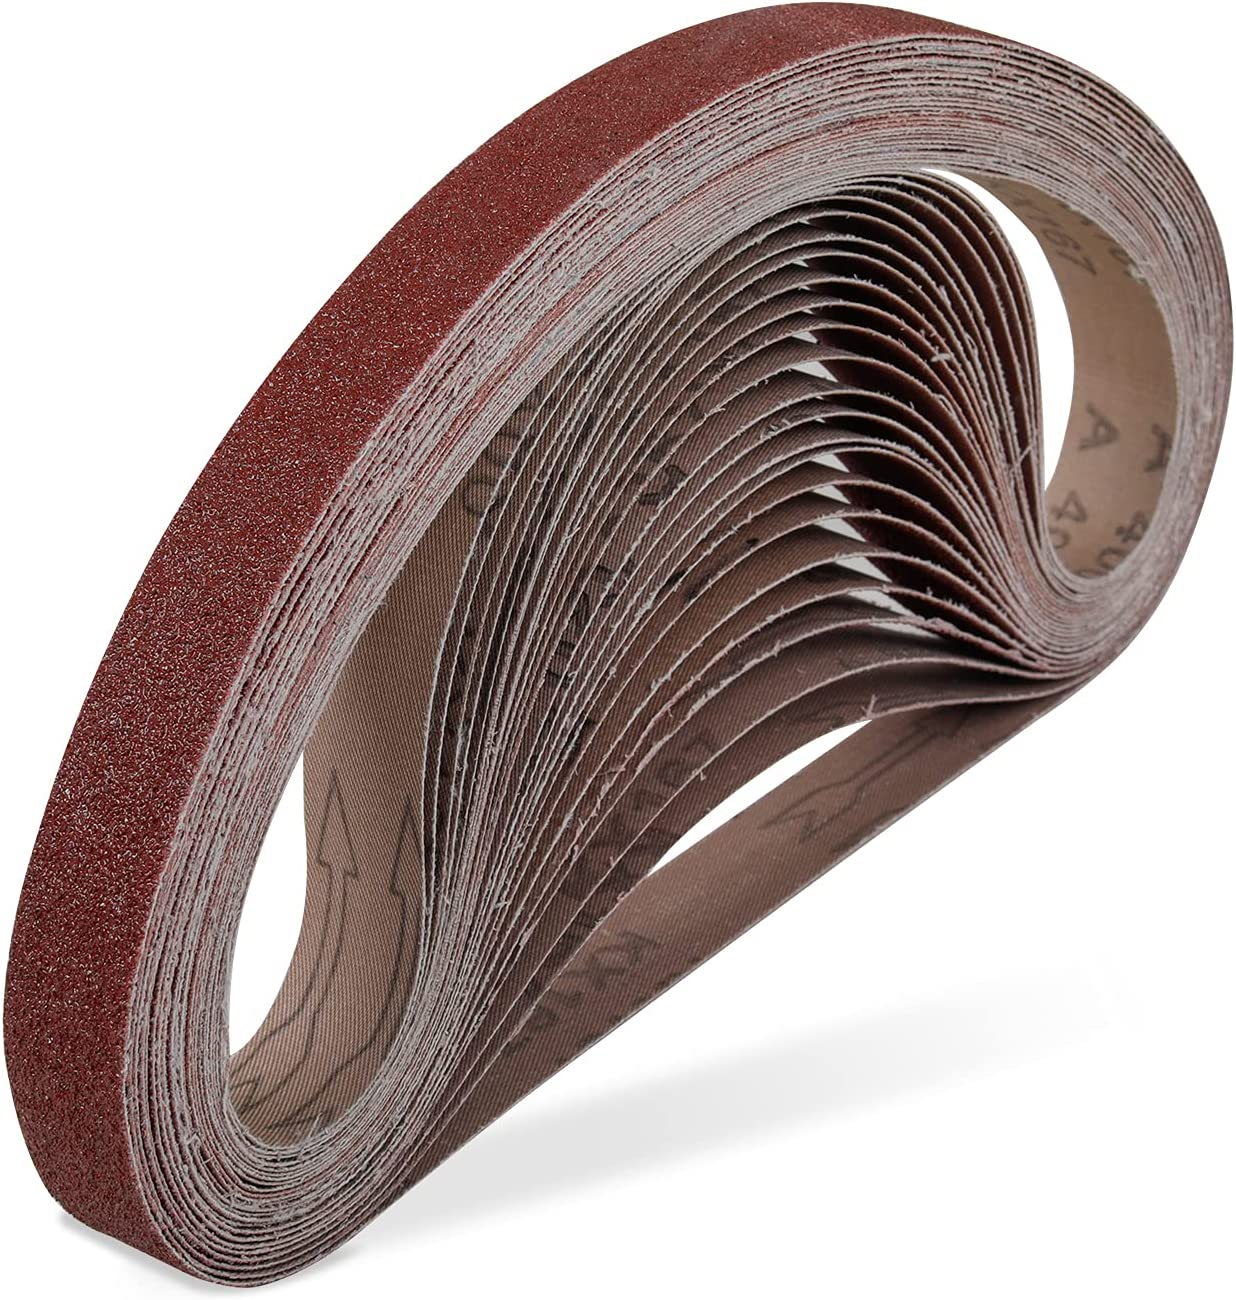 Online limited product LIZMOF Aluminum Oxide Sanding Belts with PCS Courier shipping free shipping 60 24 Sander